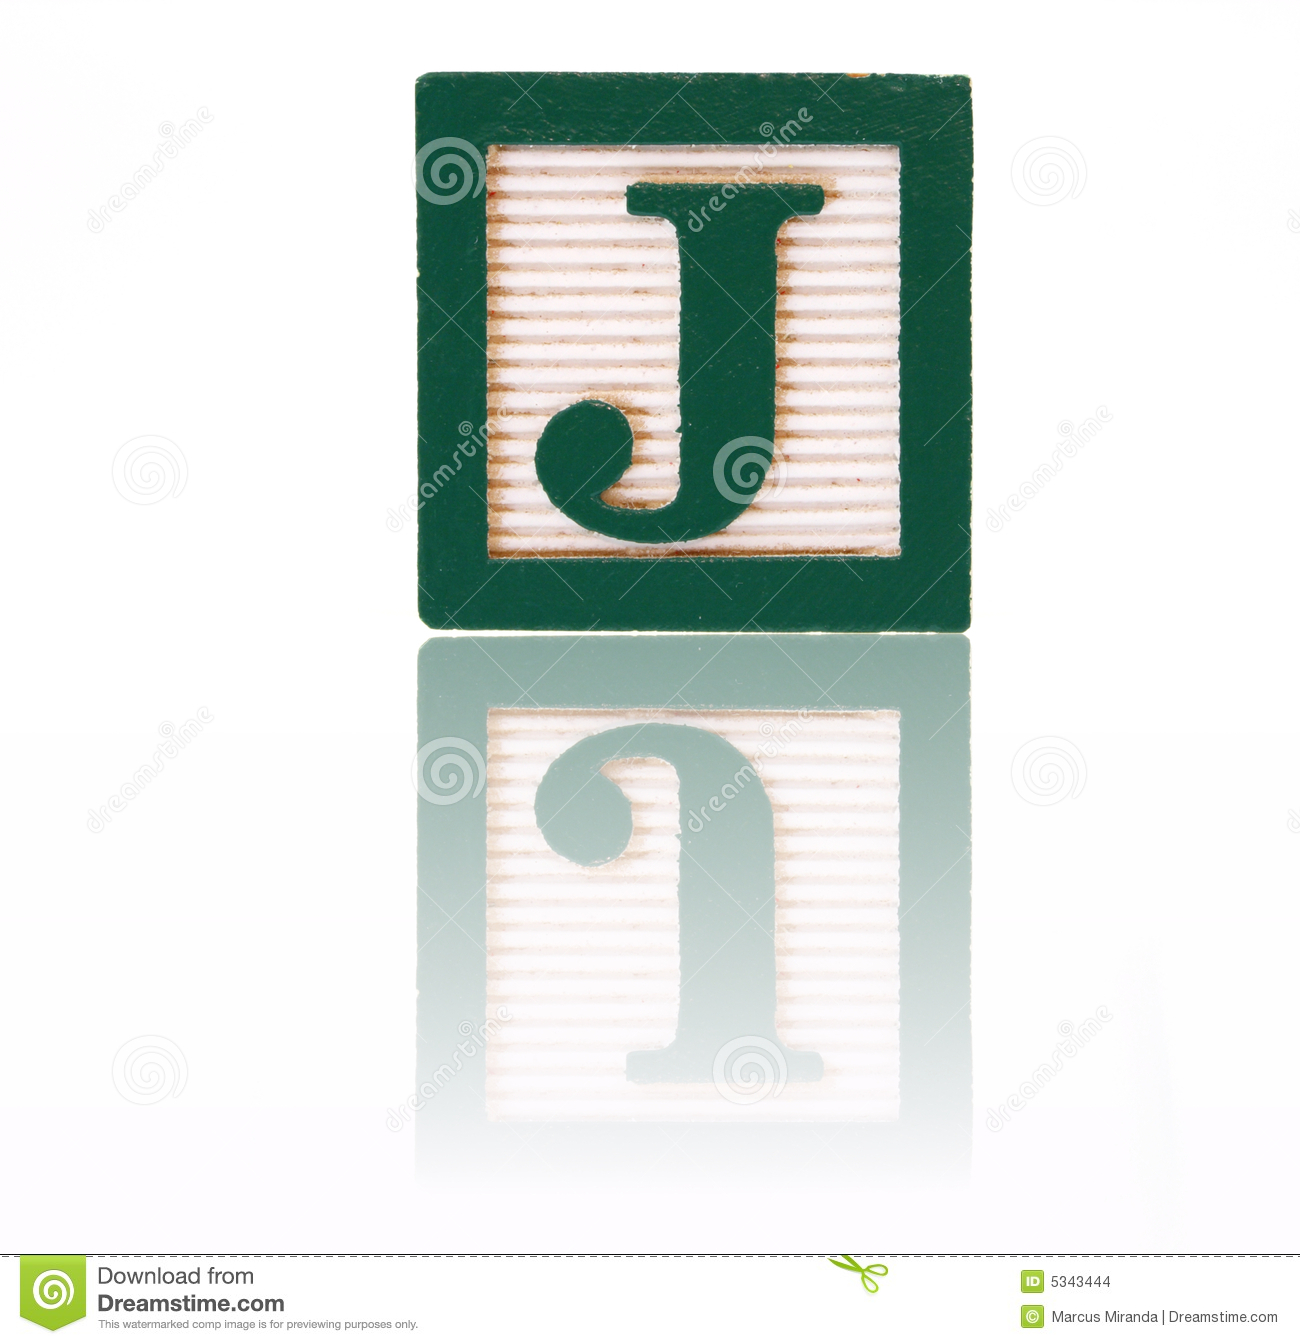 Letter j in an alphabet wood block on a reflective surface.